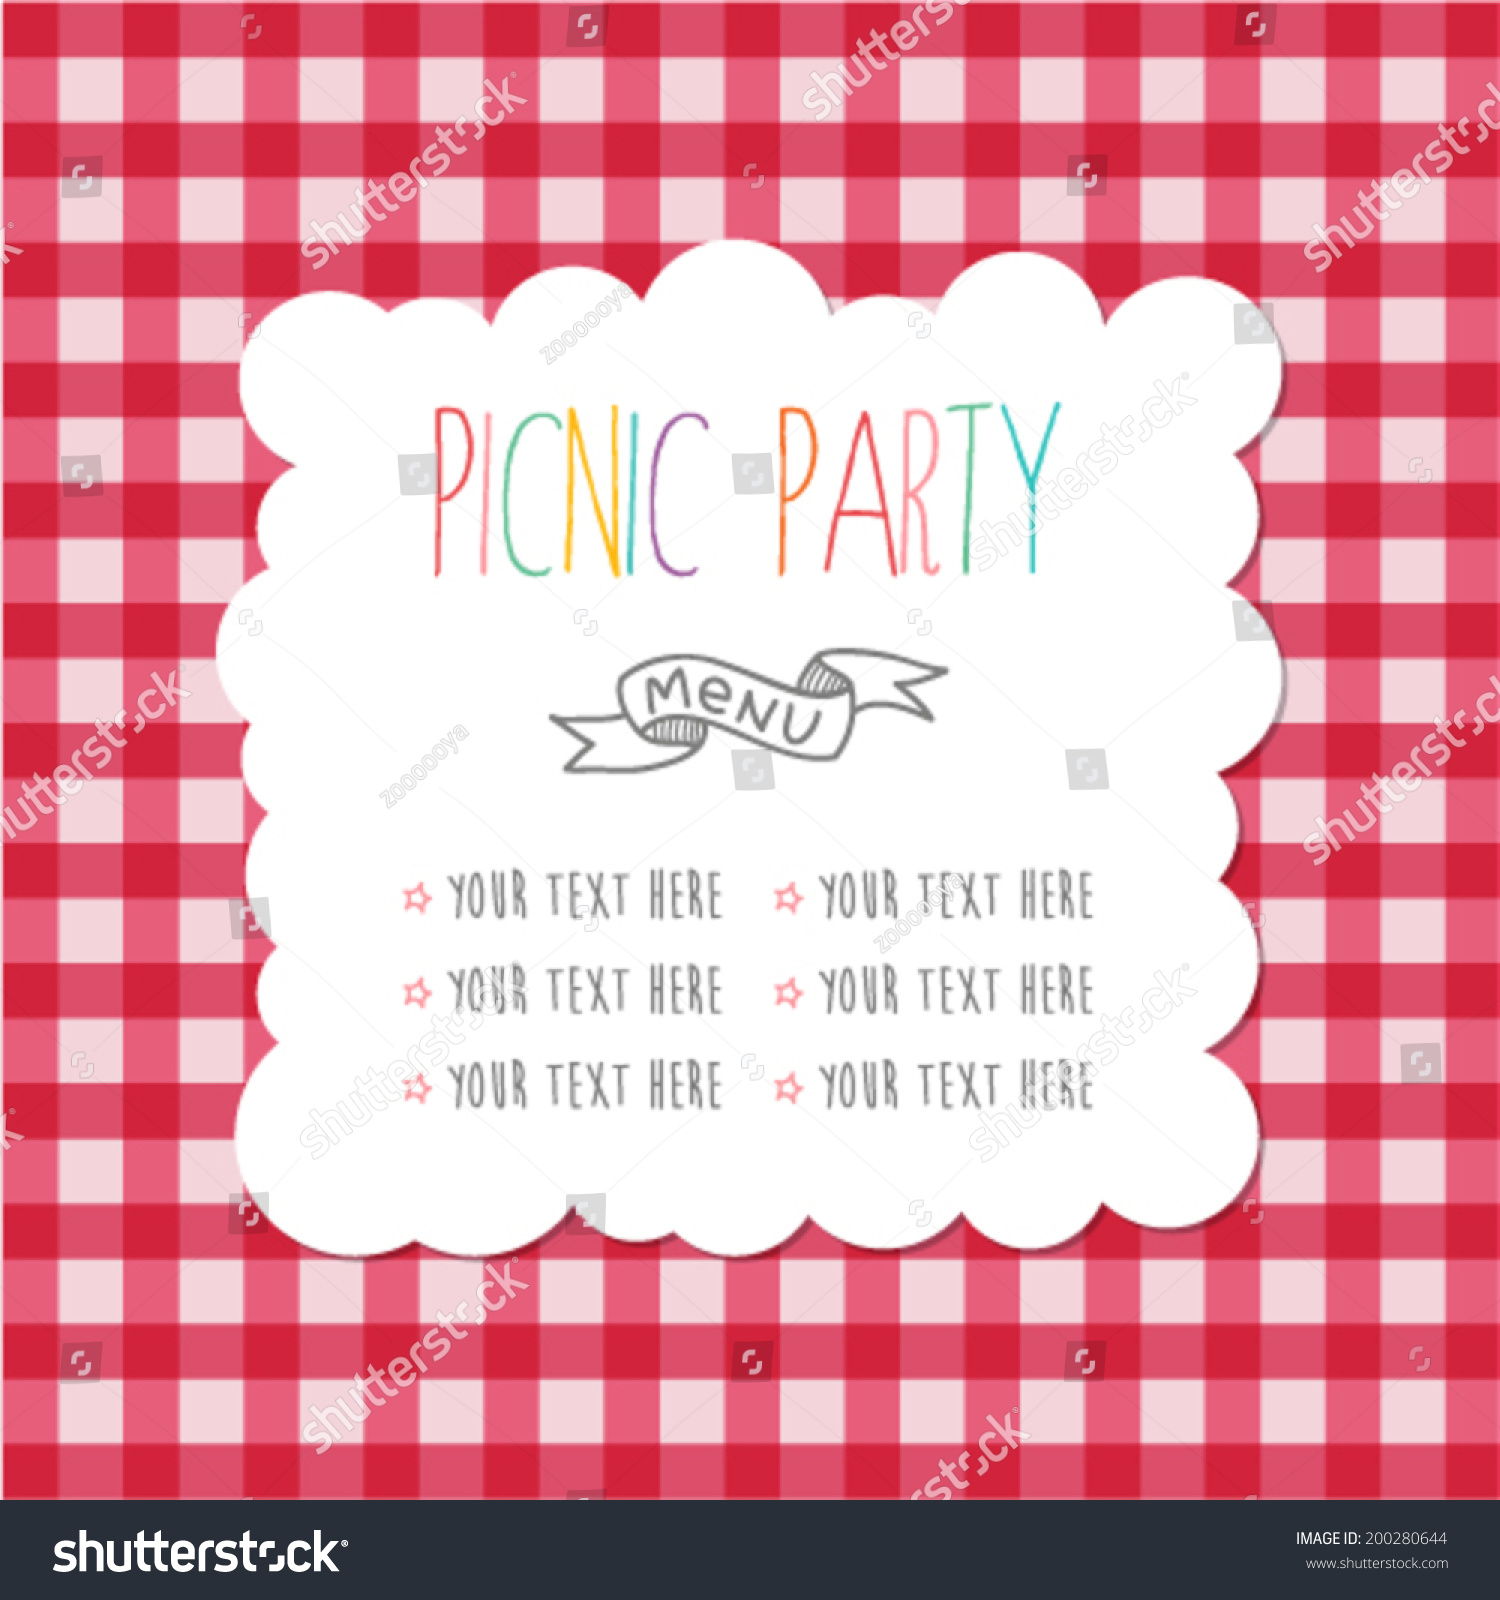 Picnic invitation images, stock photos & vectors | shutterstock.